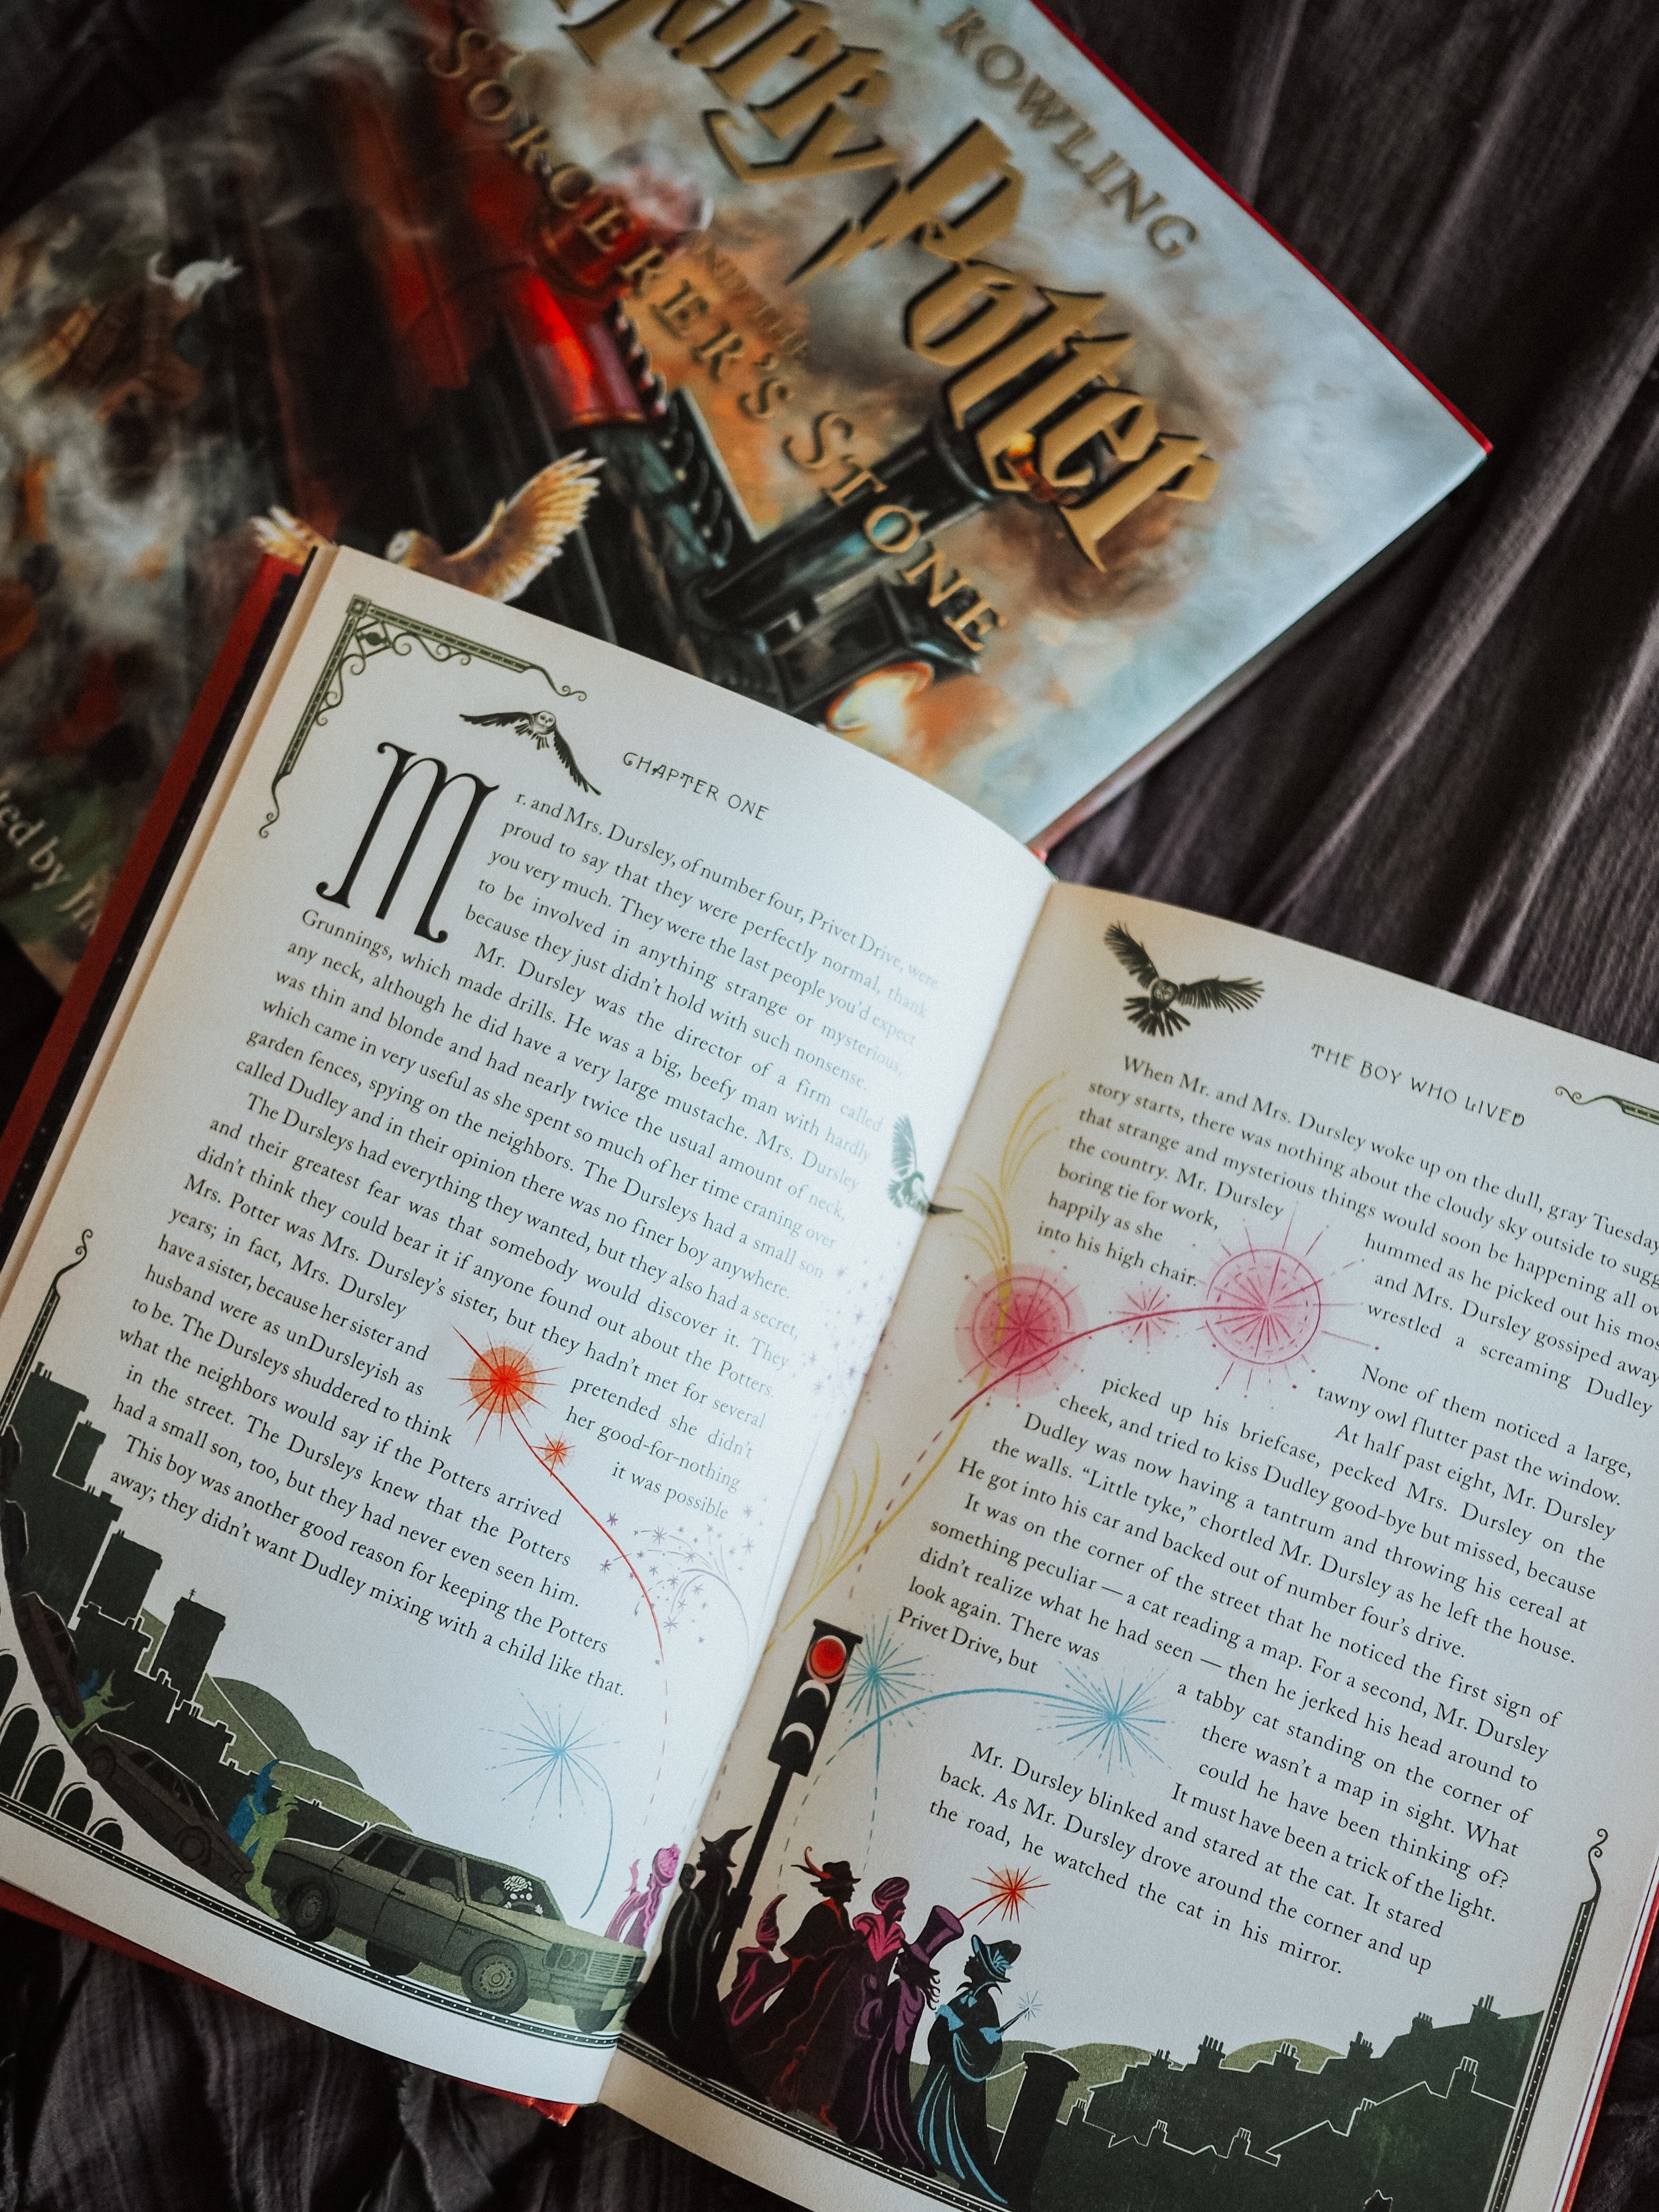 Kelsey from Blondes and Bagels reviews the best Harry Potter illustrated books for yourself - or as gifts for your Potter loving friends!